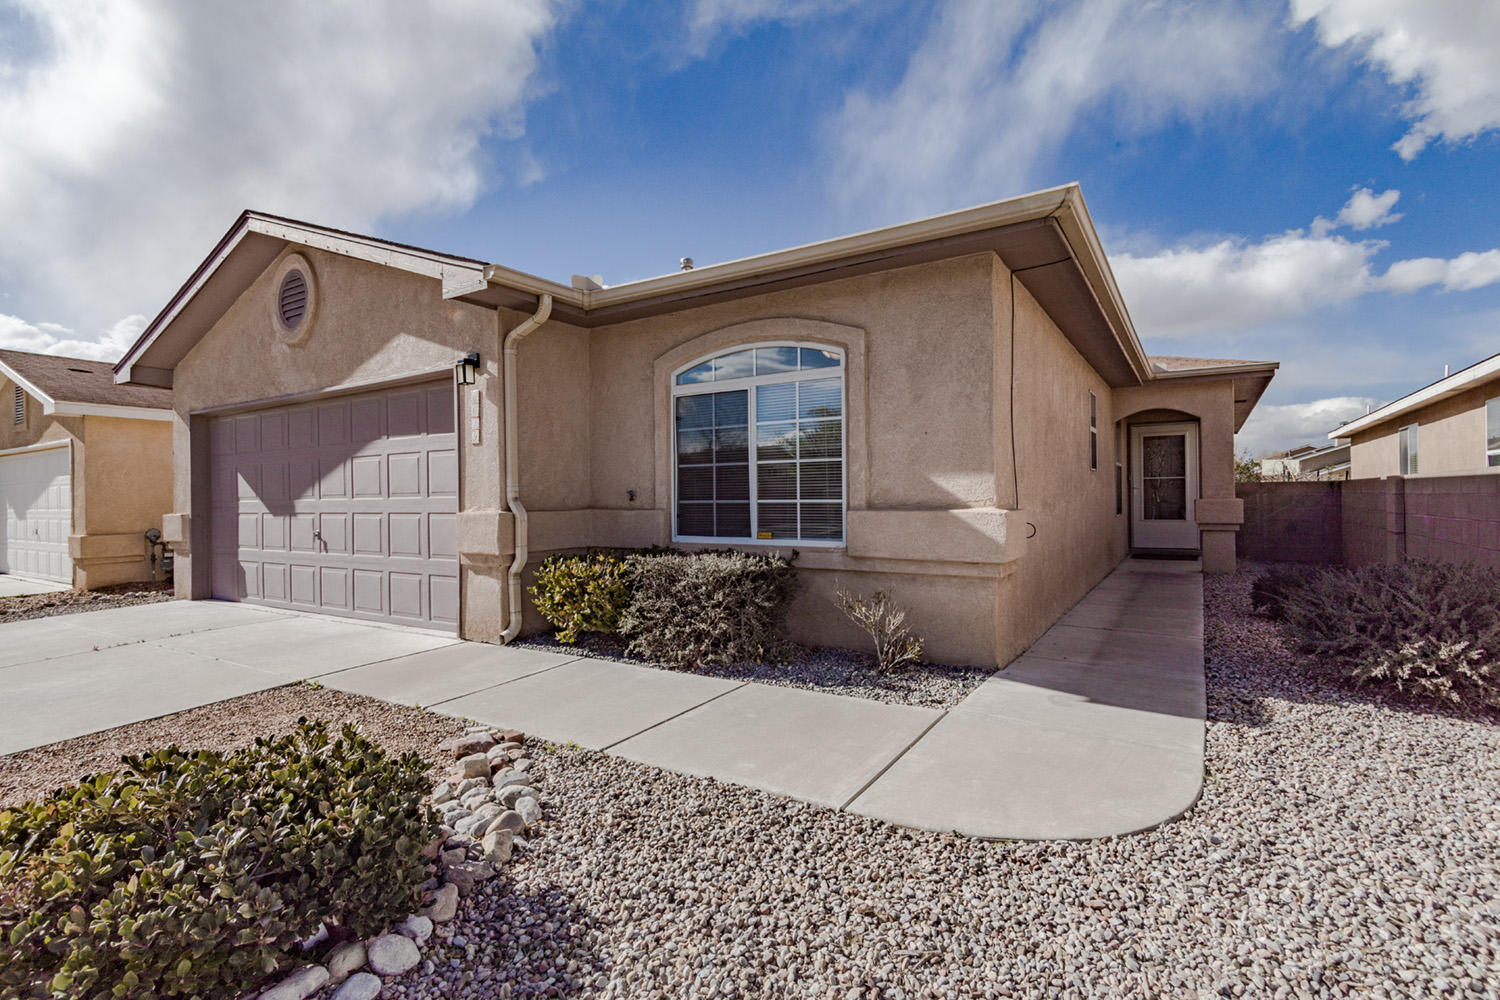 6619 NW Country Cove Place, Northwest Albuquerque and Northwest Heights, New Mexico